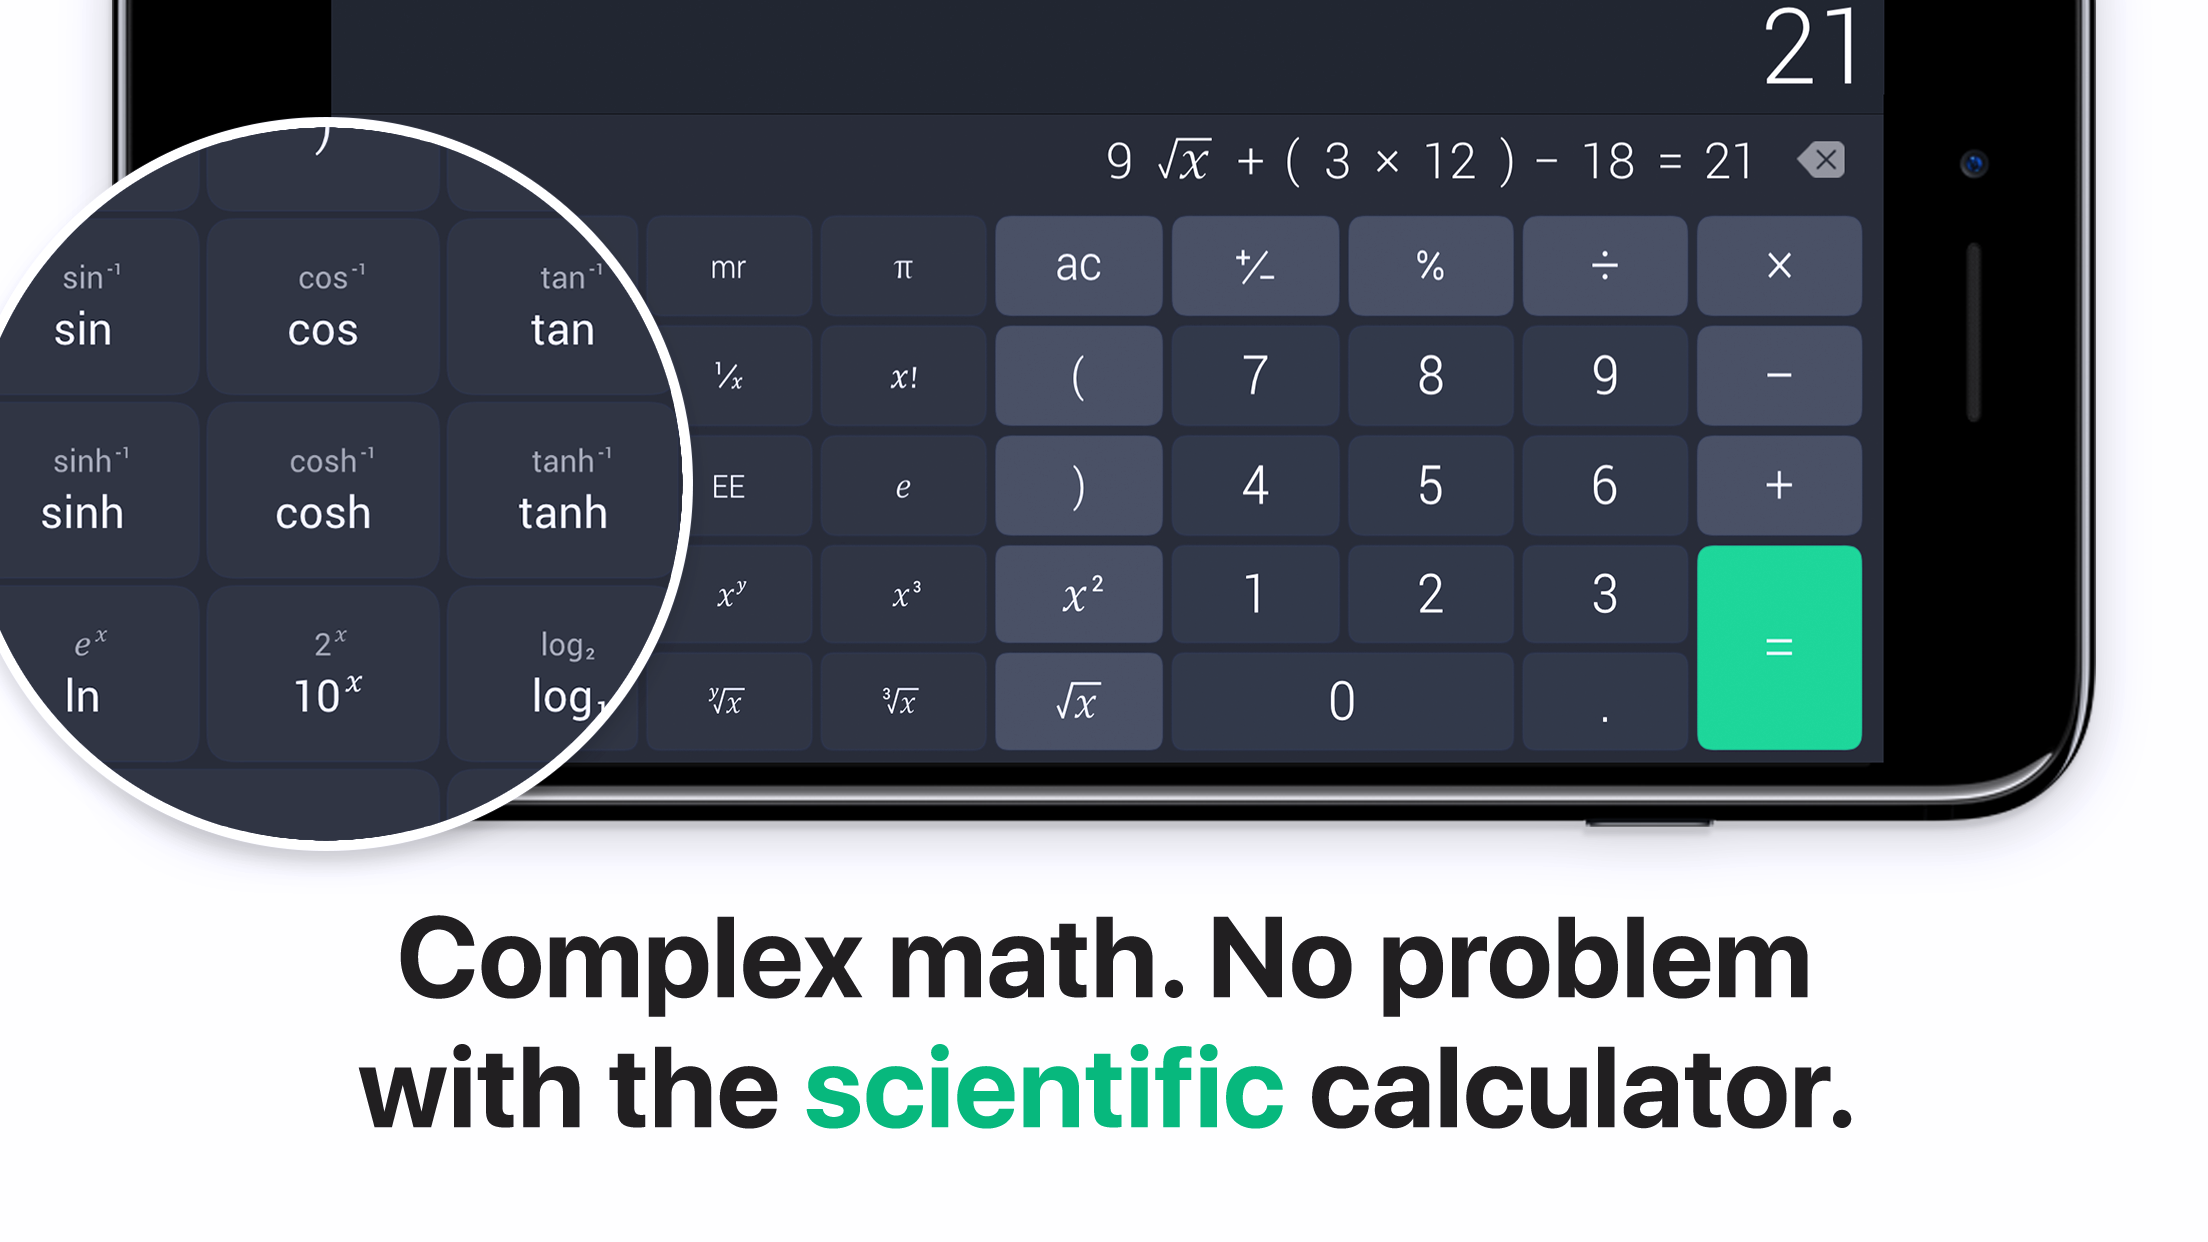 The Calculator Screenshot